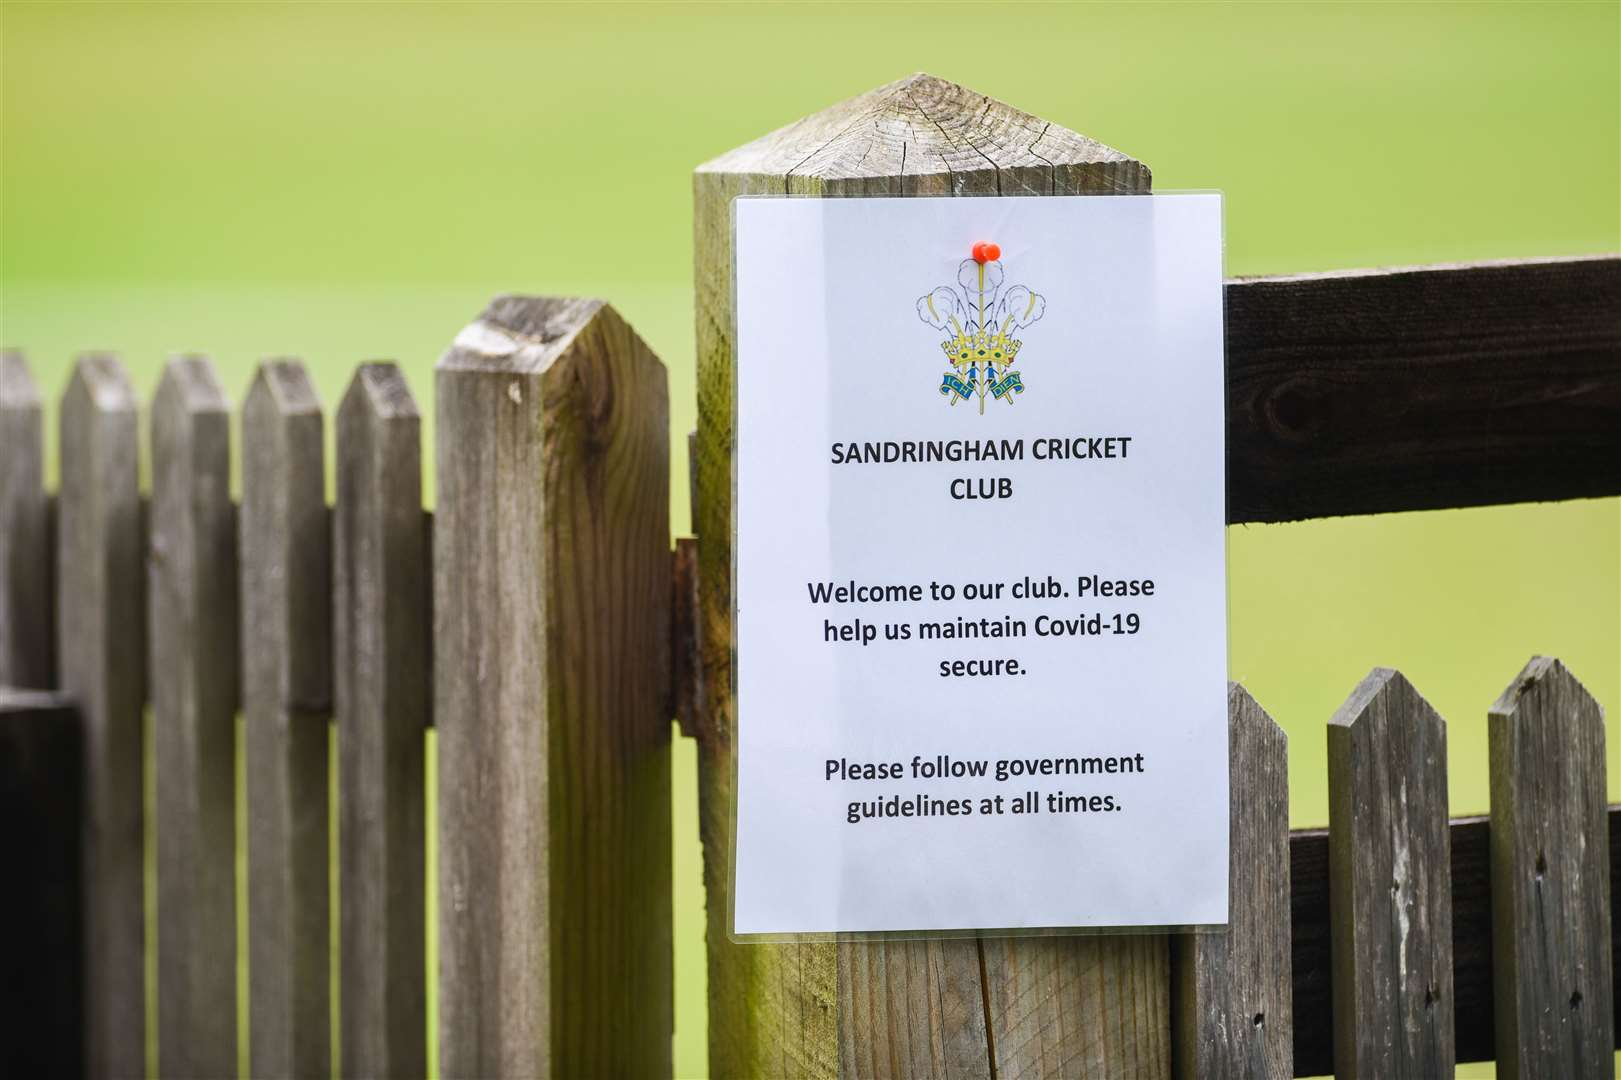 A Covid-19 safety message at Sandringham Cricket Club.. (50094336)